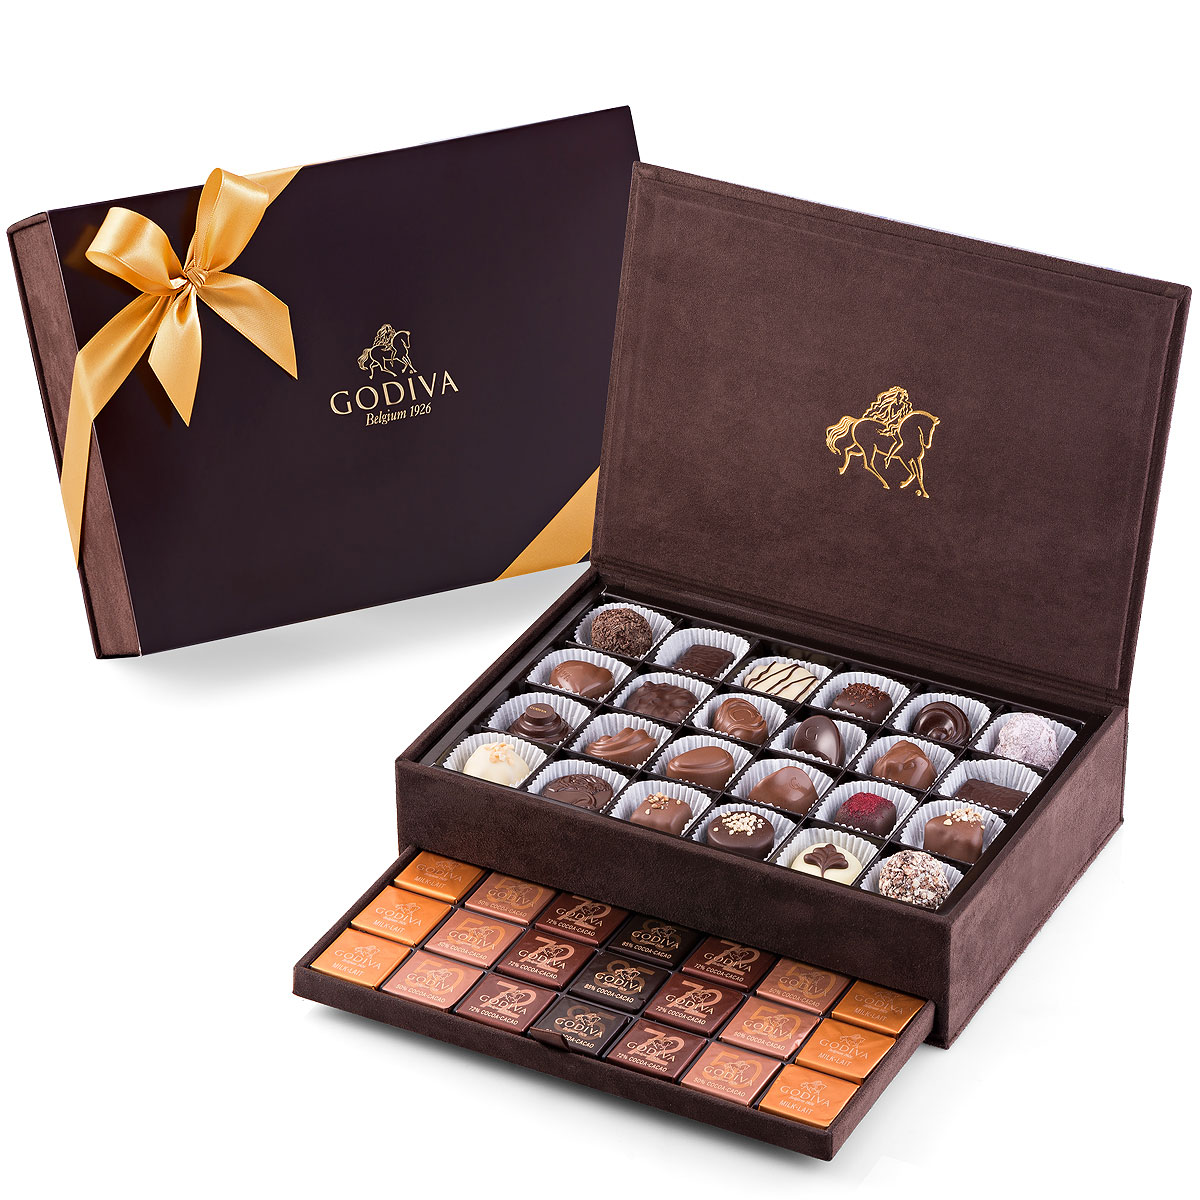 Godiva Royal Gift Box Large - Delivery in Europe Others - Godiva